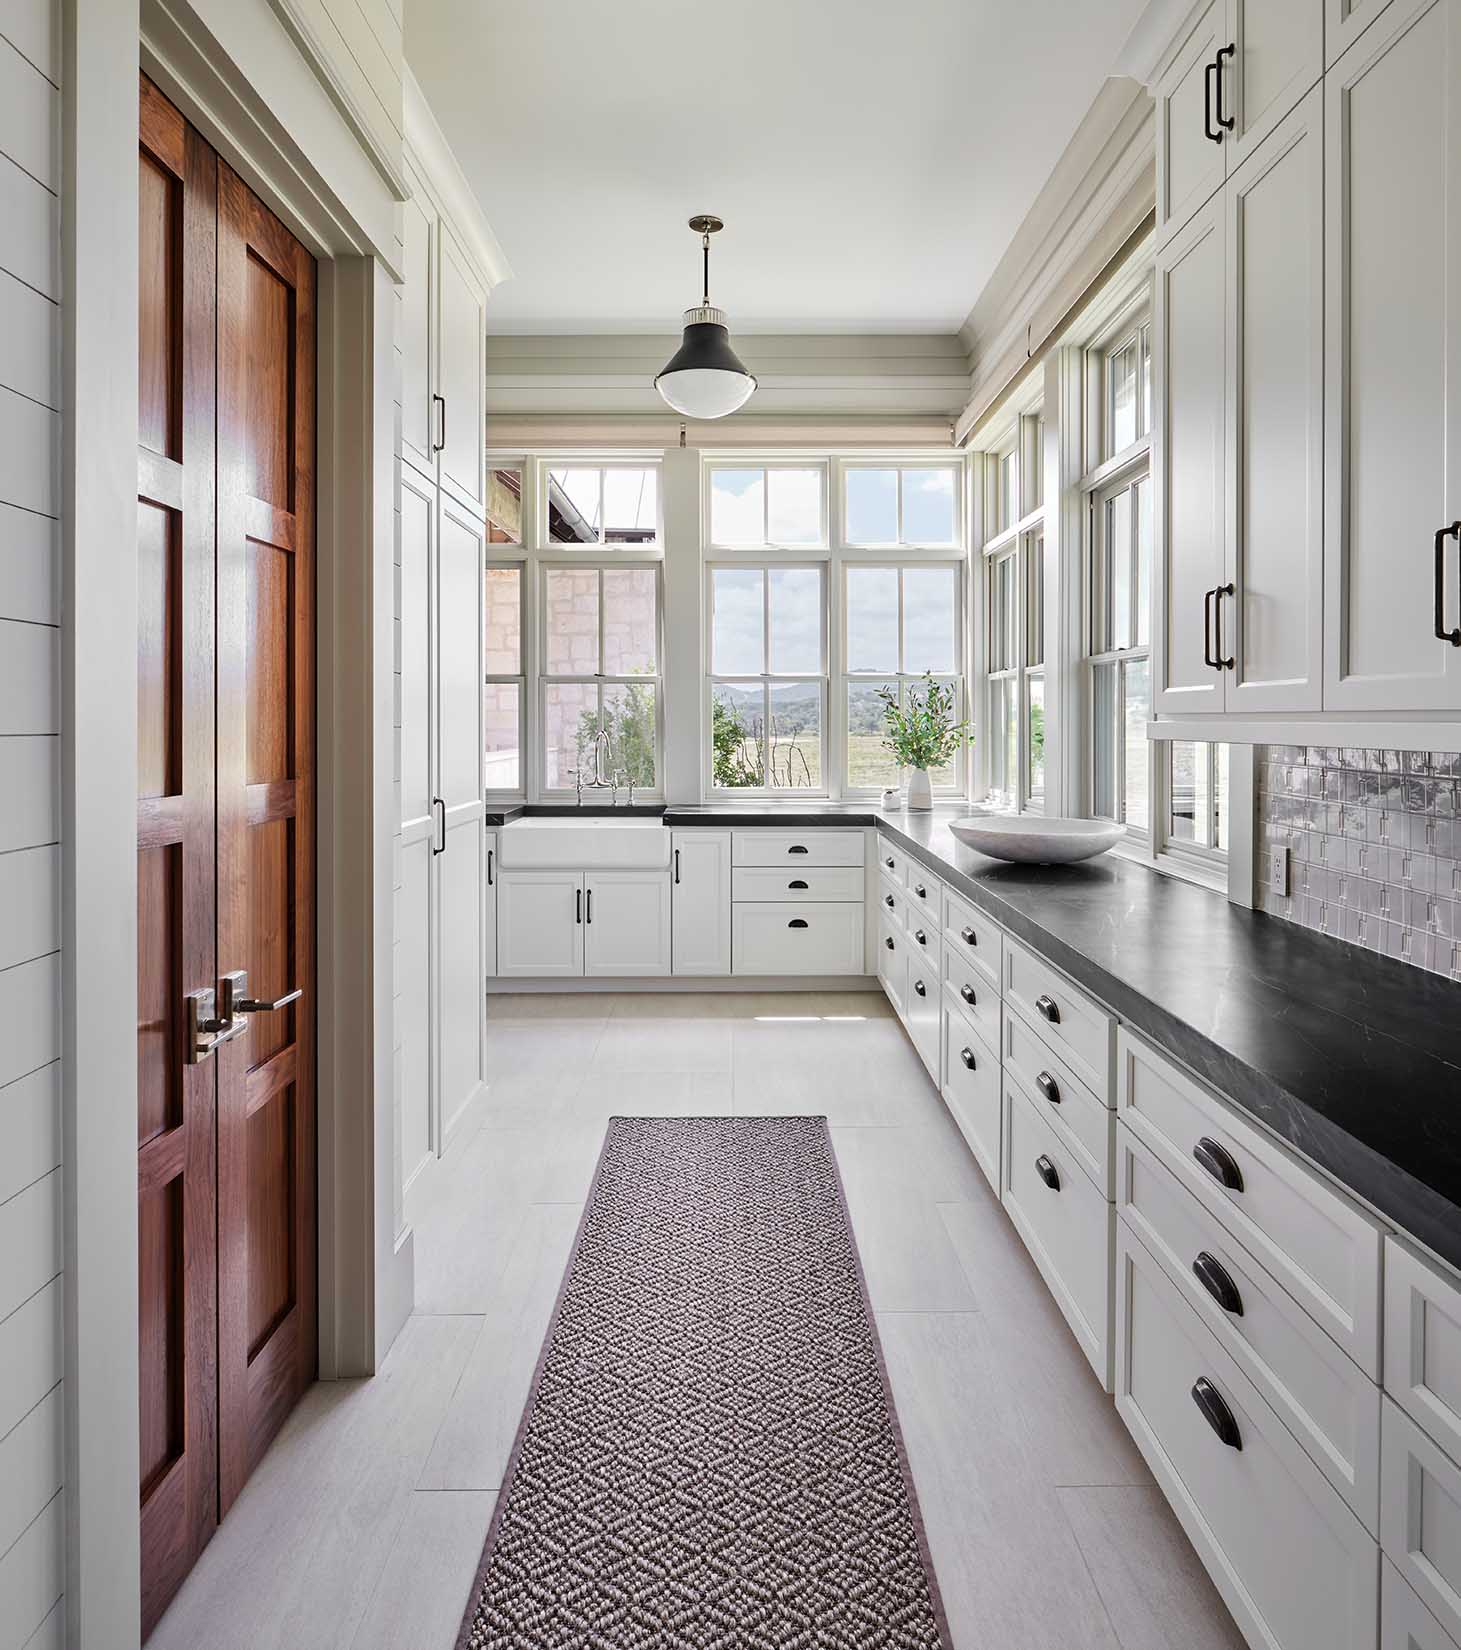 White kitchen in ranch house, with penny gap shiplap, Benjamin Moore OC-46 Halo